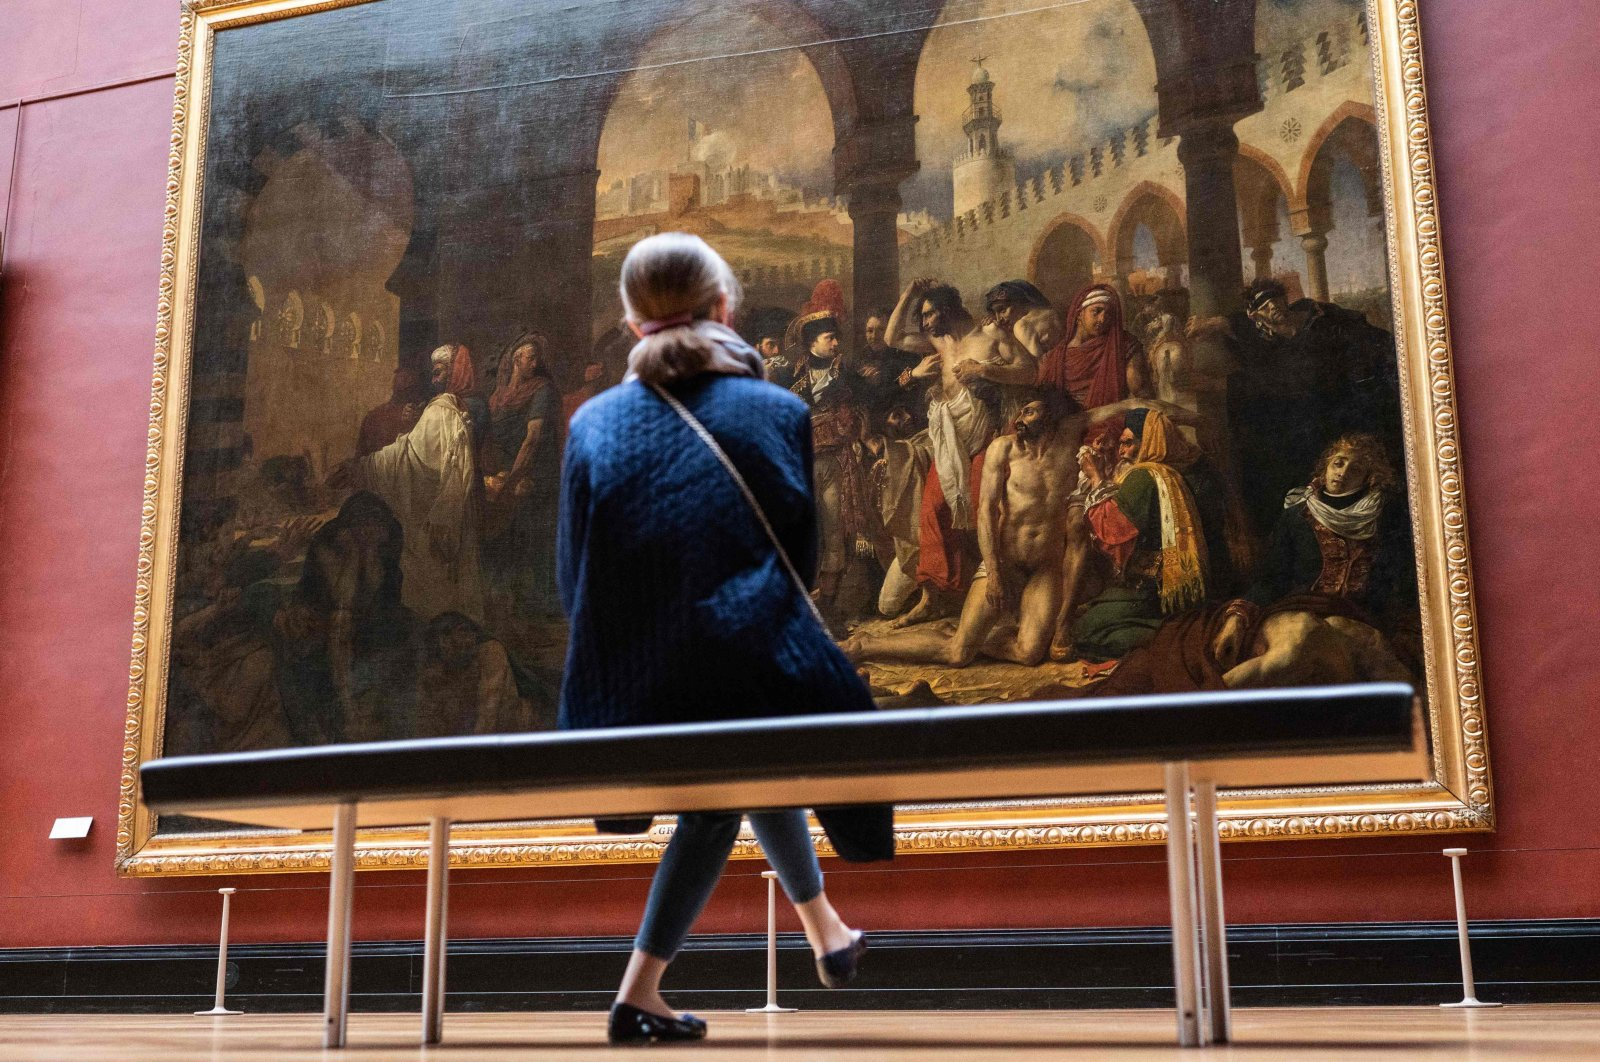 """A woman views the original 1804 painting of """"Bonaparte visiting the plague stricken in Jaffa"""" by French painter Antoine-Jean Gros, on display at the Louvre museum in Paris, France, April 29, 2021. (AFP Photo)"""